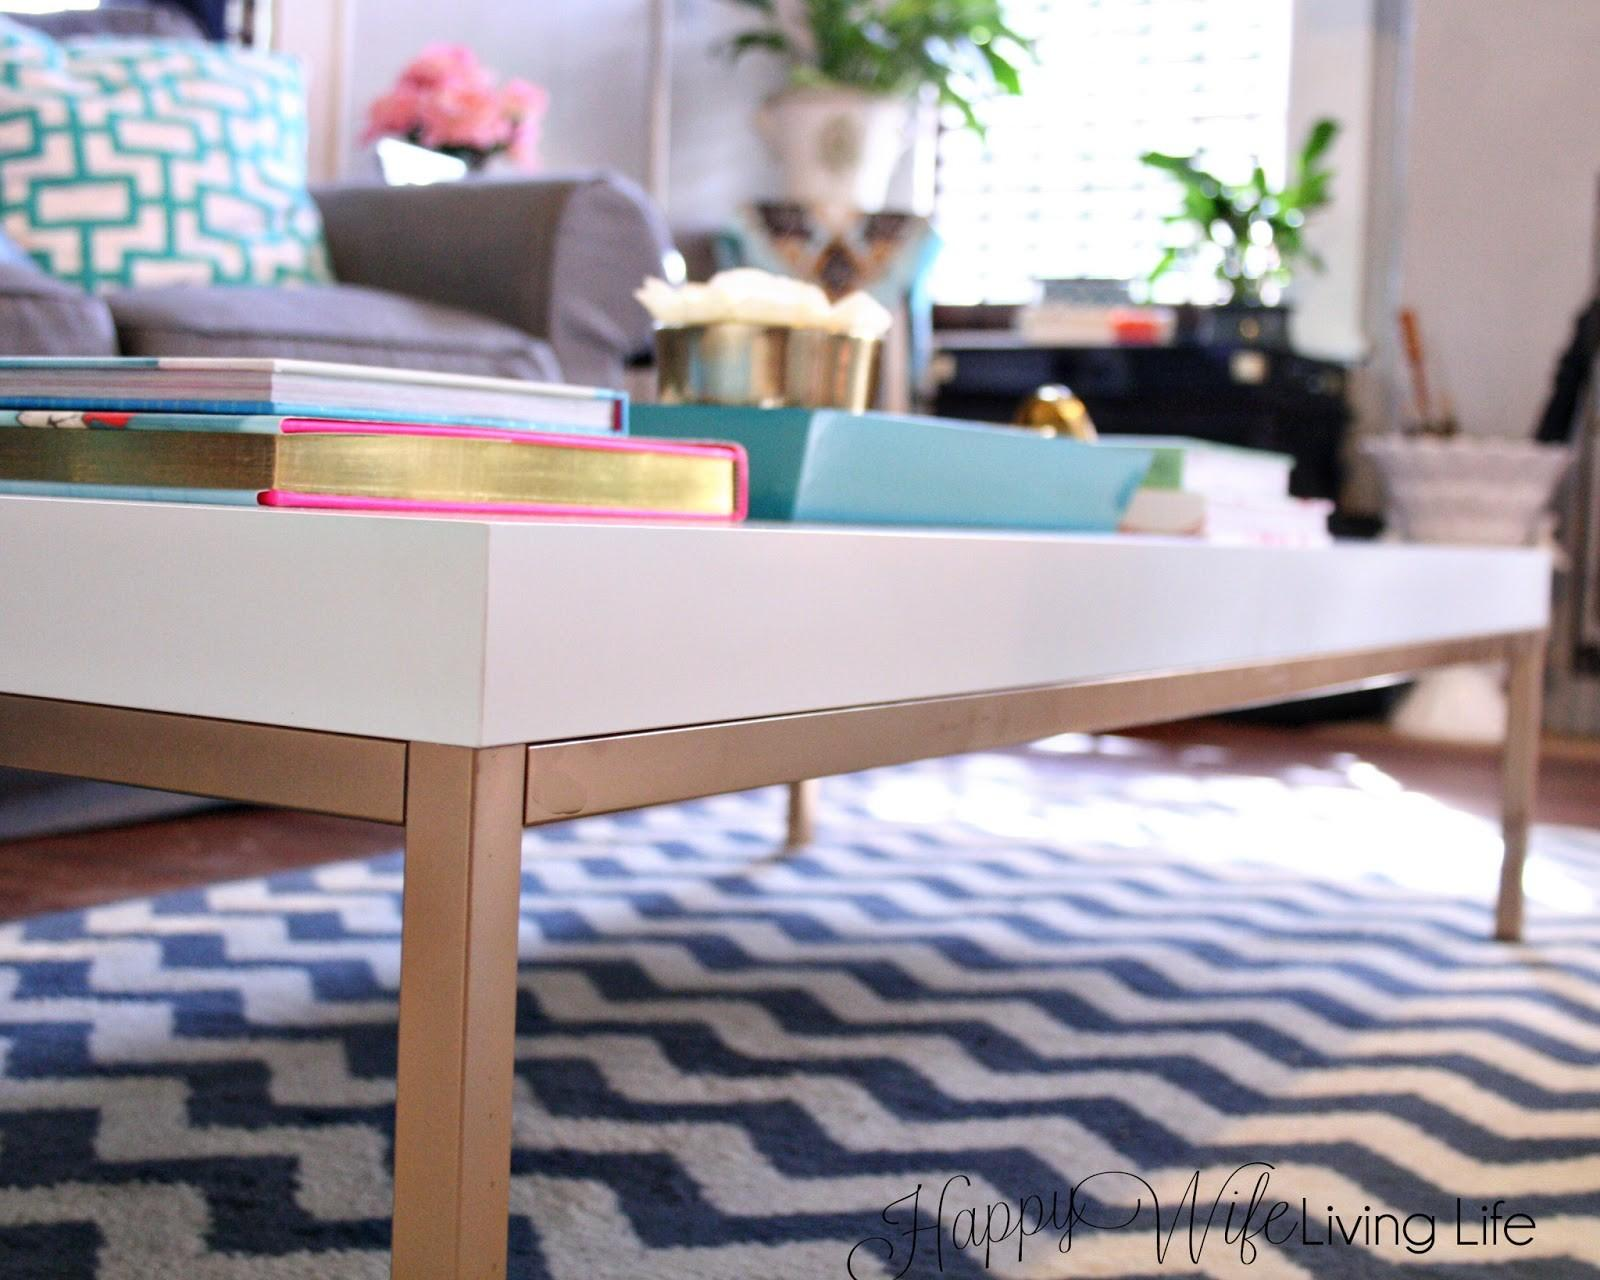 33 Great Diy Ikea Coffee Table Hacks That Will Refresh Your Everyday Life Look Fabulous Decoratorist